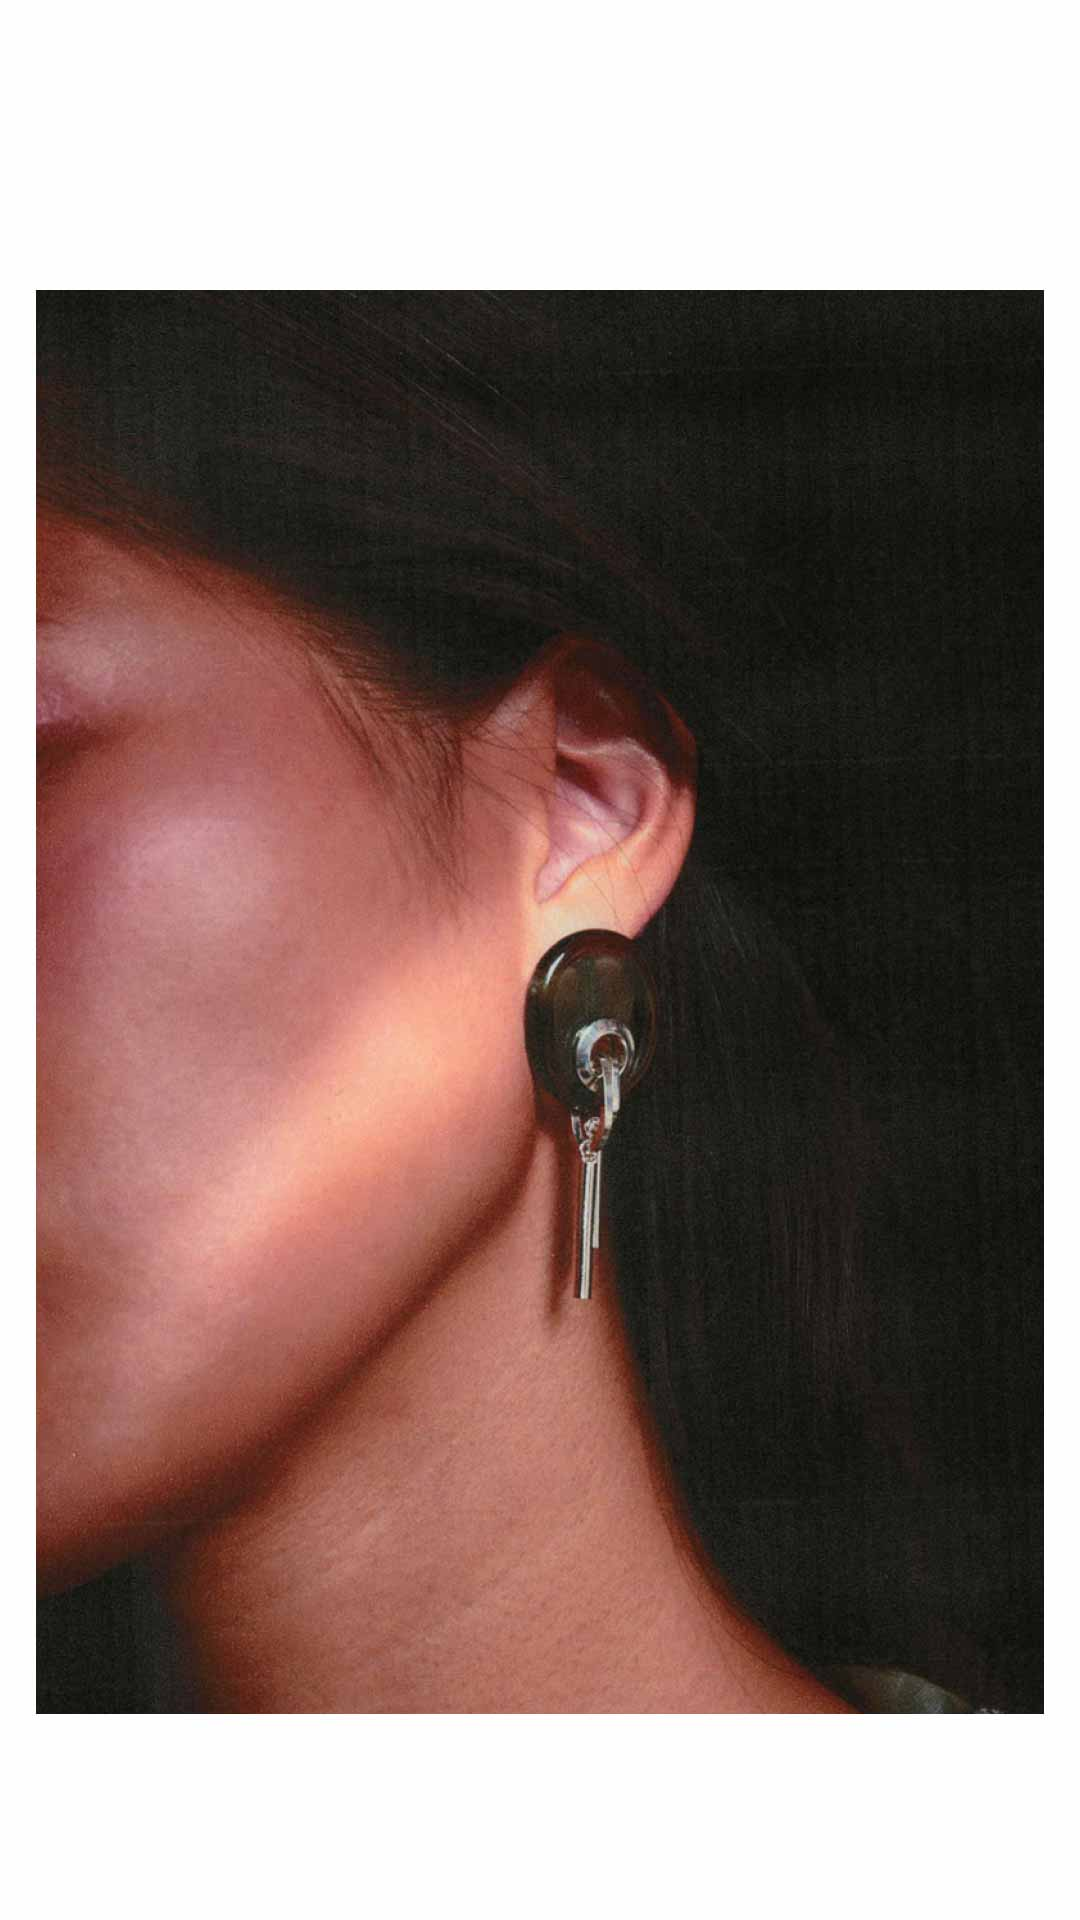 <span class='name'>Smoky Glass Earrings</span> 					<span class='type GT'> </span><br/> 					<span class='GTThin'>S</span><span class='GTReg'>19</span> 					<span class='goToShop GT'><a href='mailto:jewellery@zeldapassini.com'><span class='buy'>Buy</span><span class='now'>order</span></a></span>